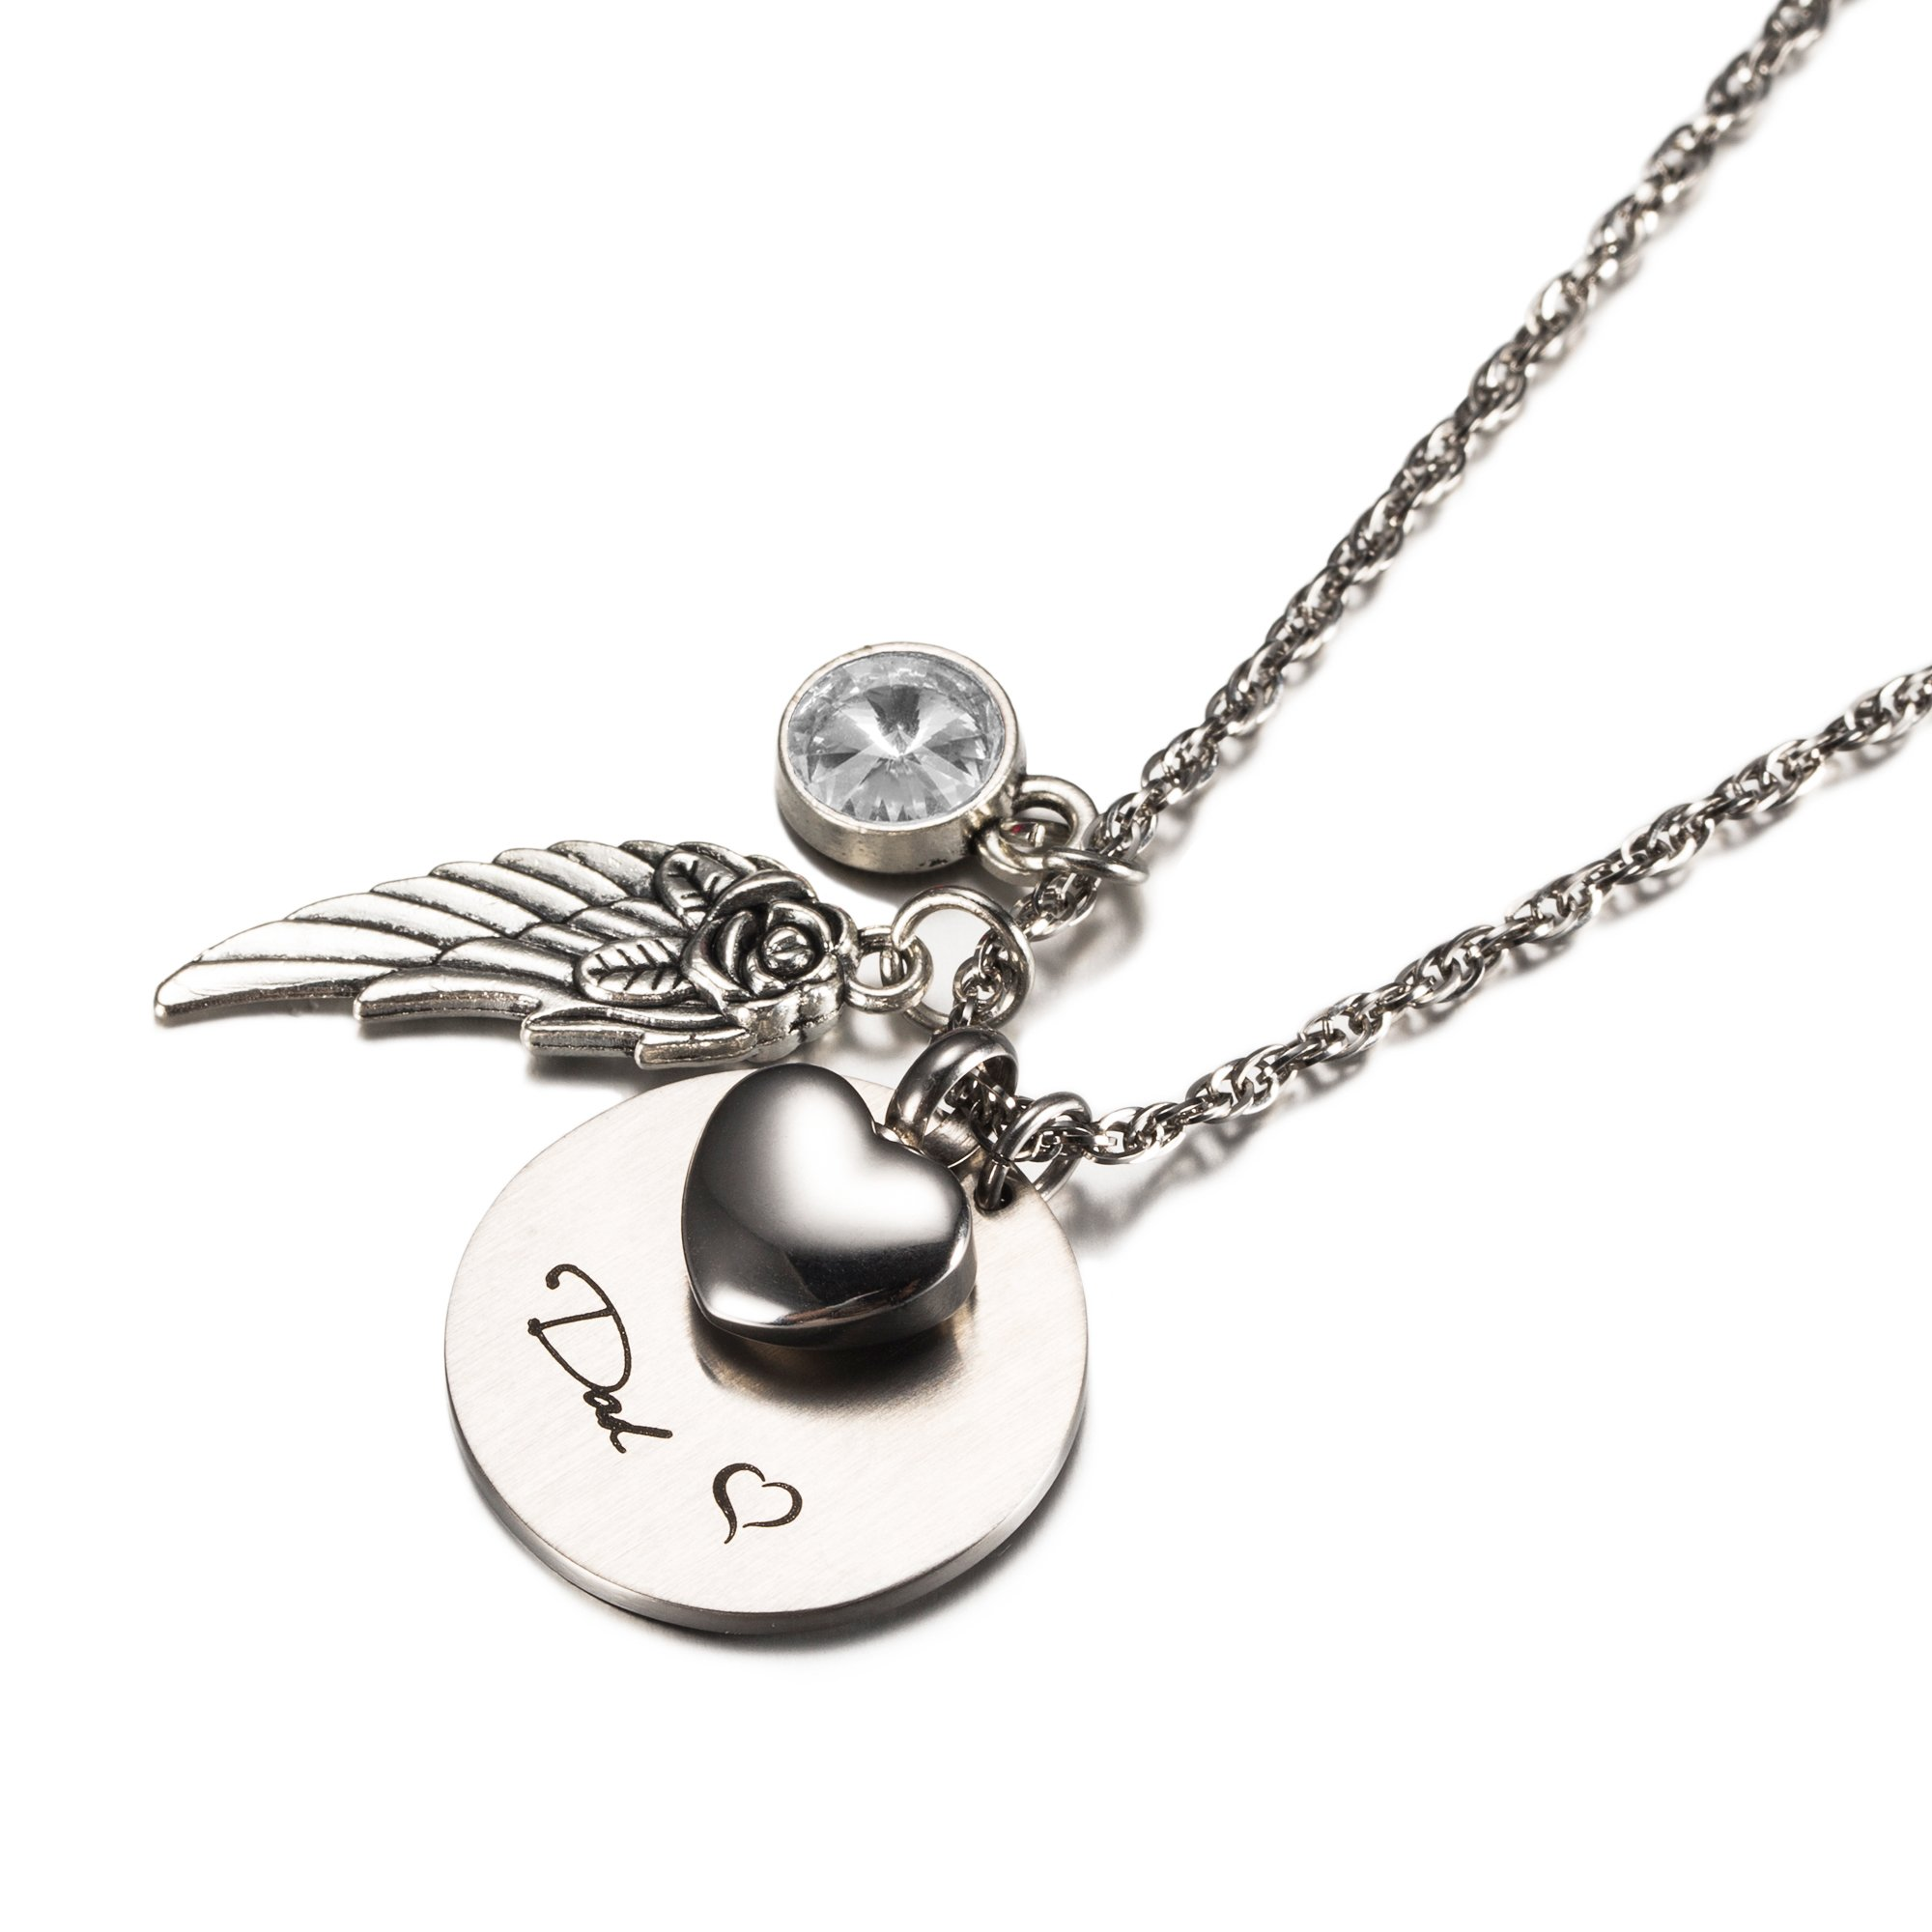 Cremation Jewelry For Ashes Urn Necklaces Memorial Gifts Buy Online In Bahamas Cheku Products In Bahamas See Prices Reviews And Free Delivery Over Bsd80 Desertcart